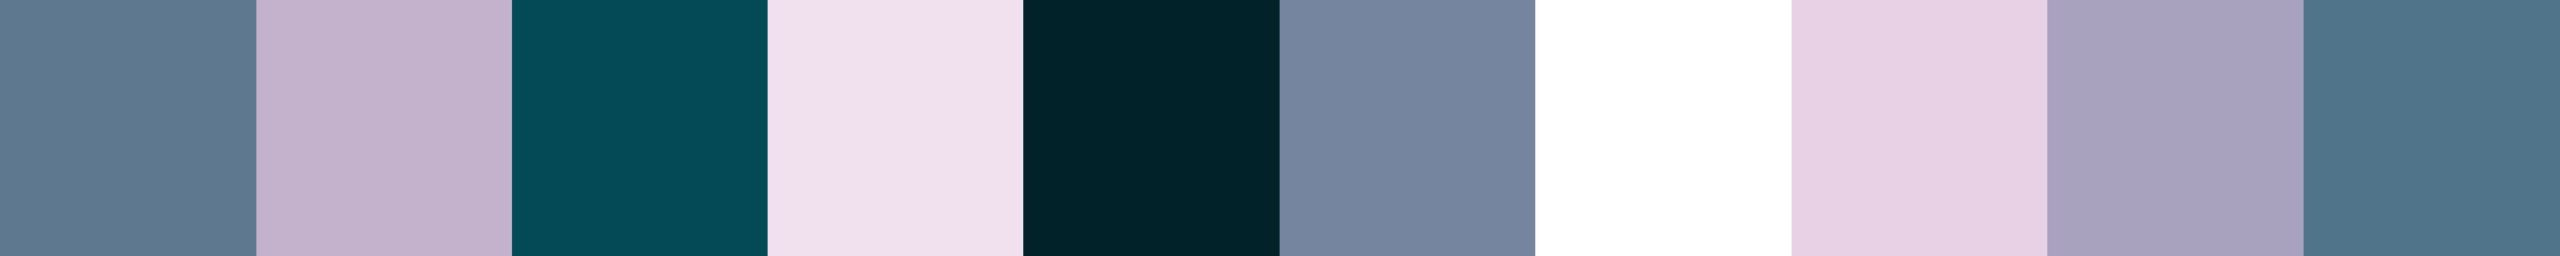 354 Xafrizia Color Palette